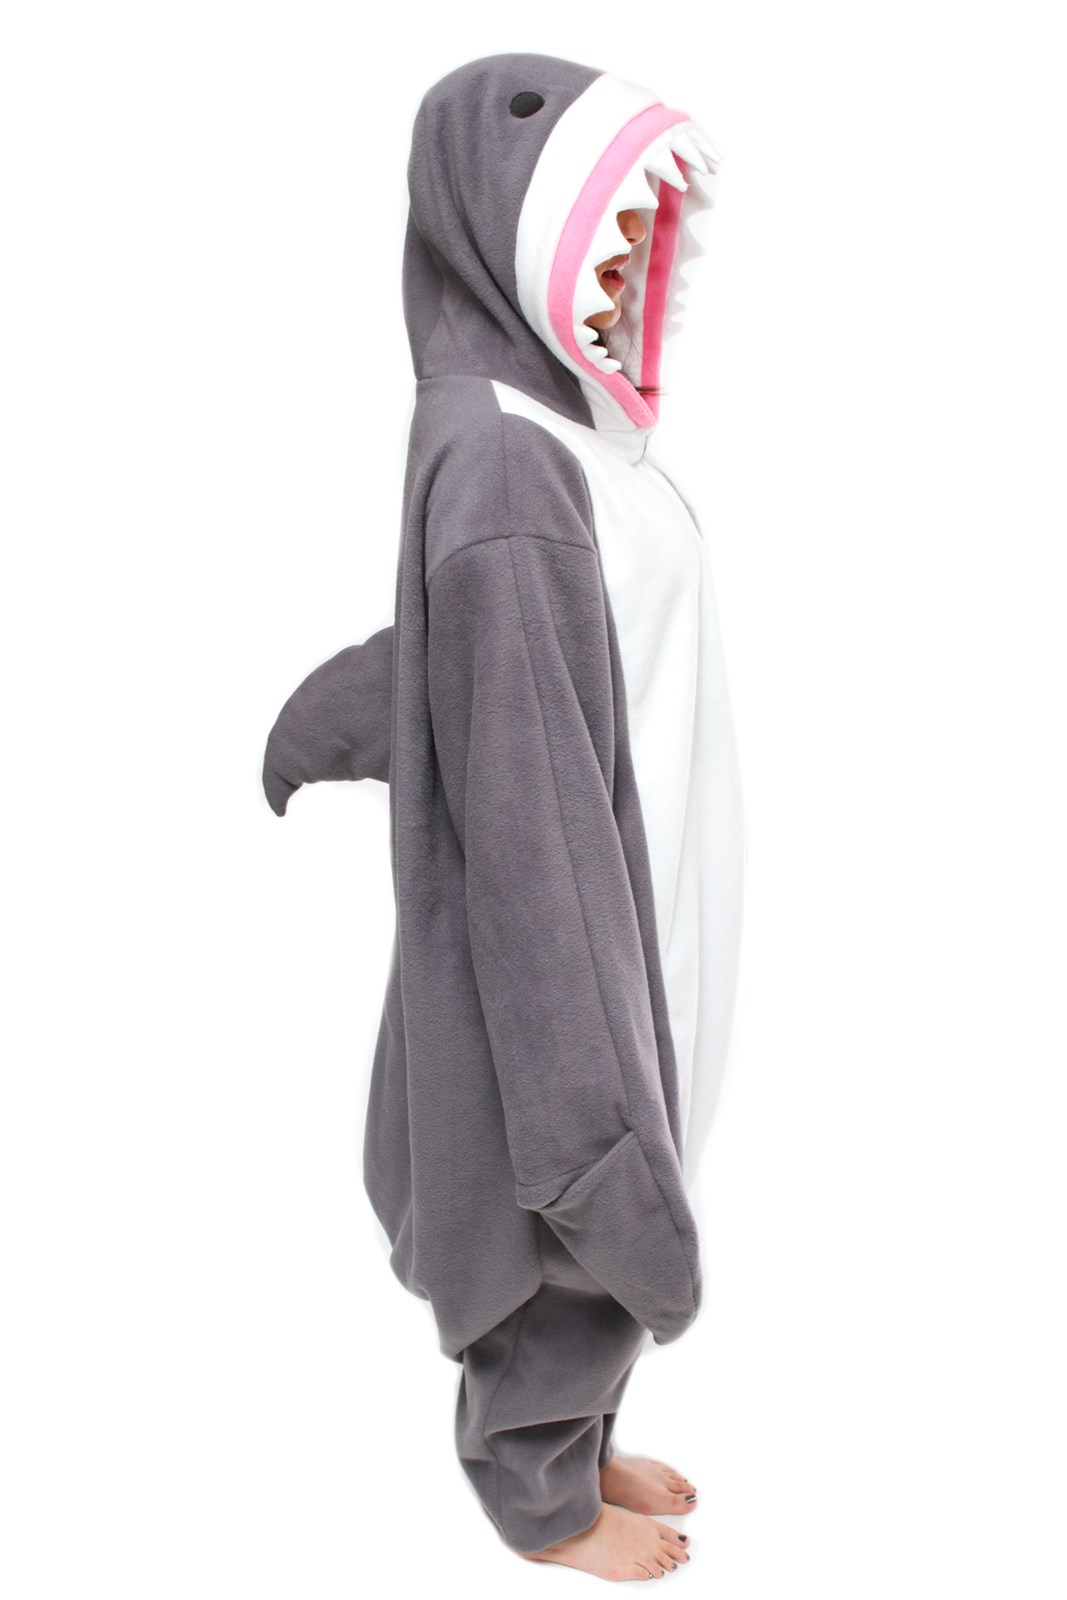 Bcozy Shark Adult Costume